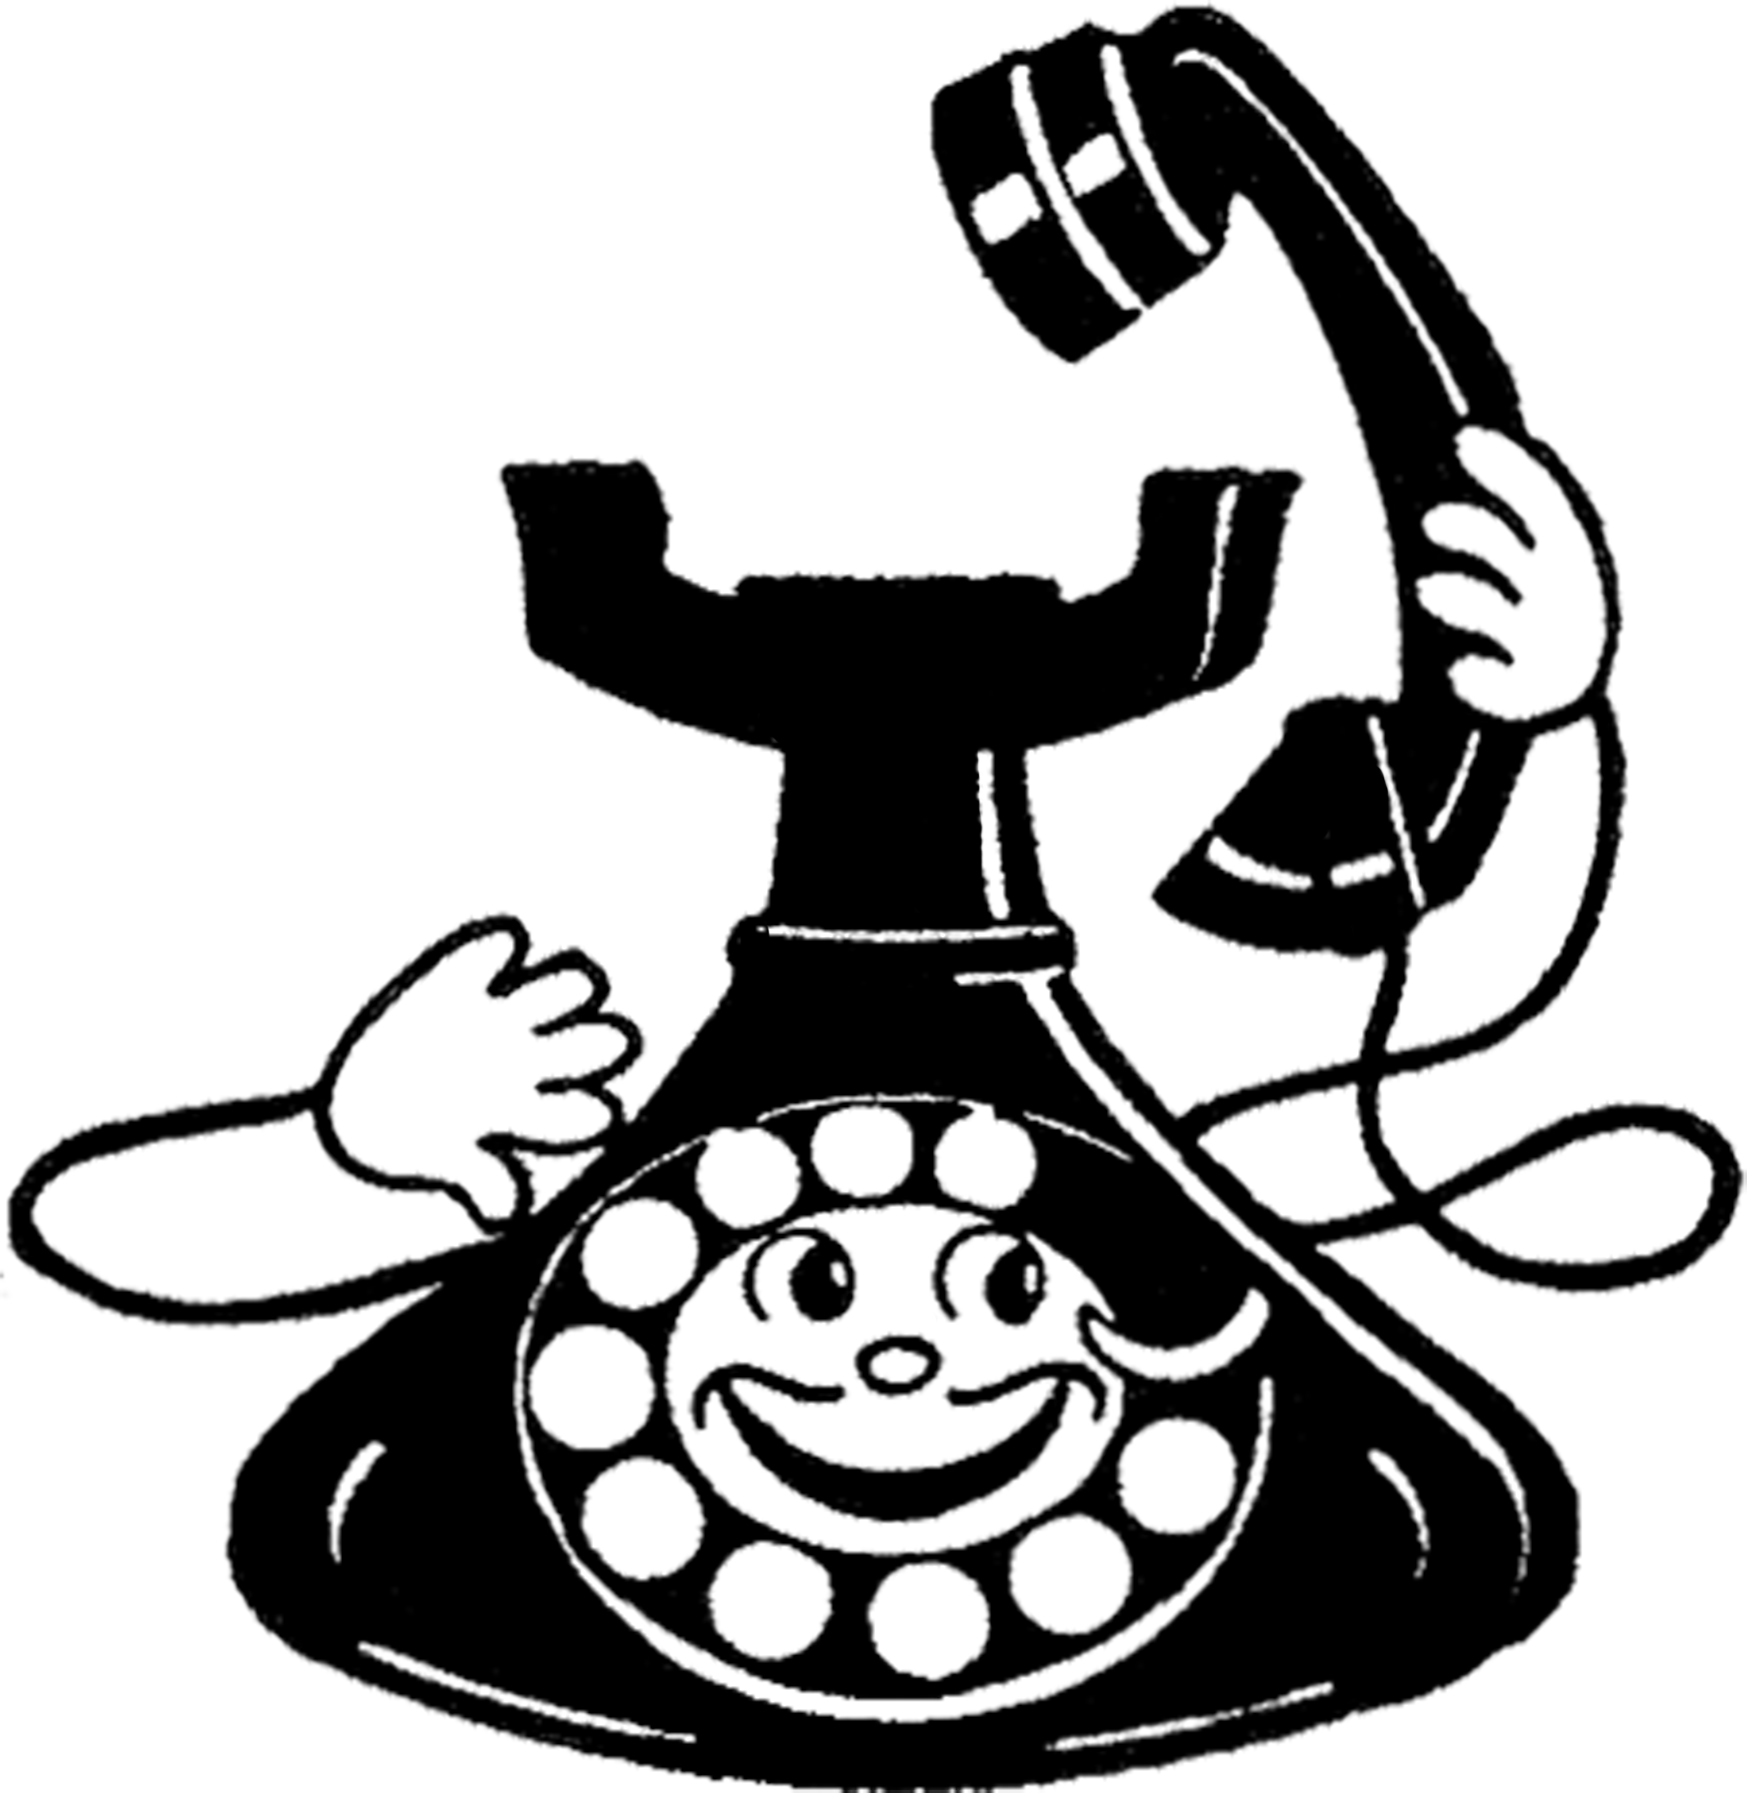 vintage images the. Telephone clipart fun